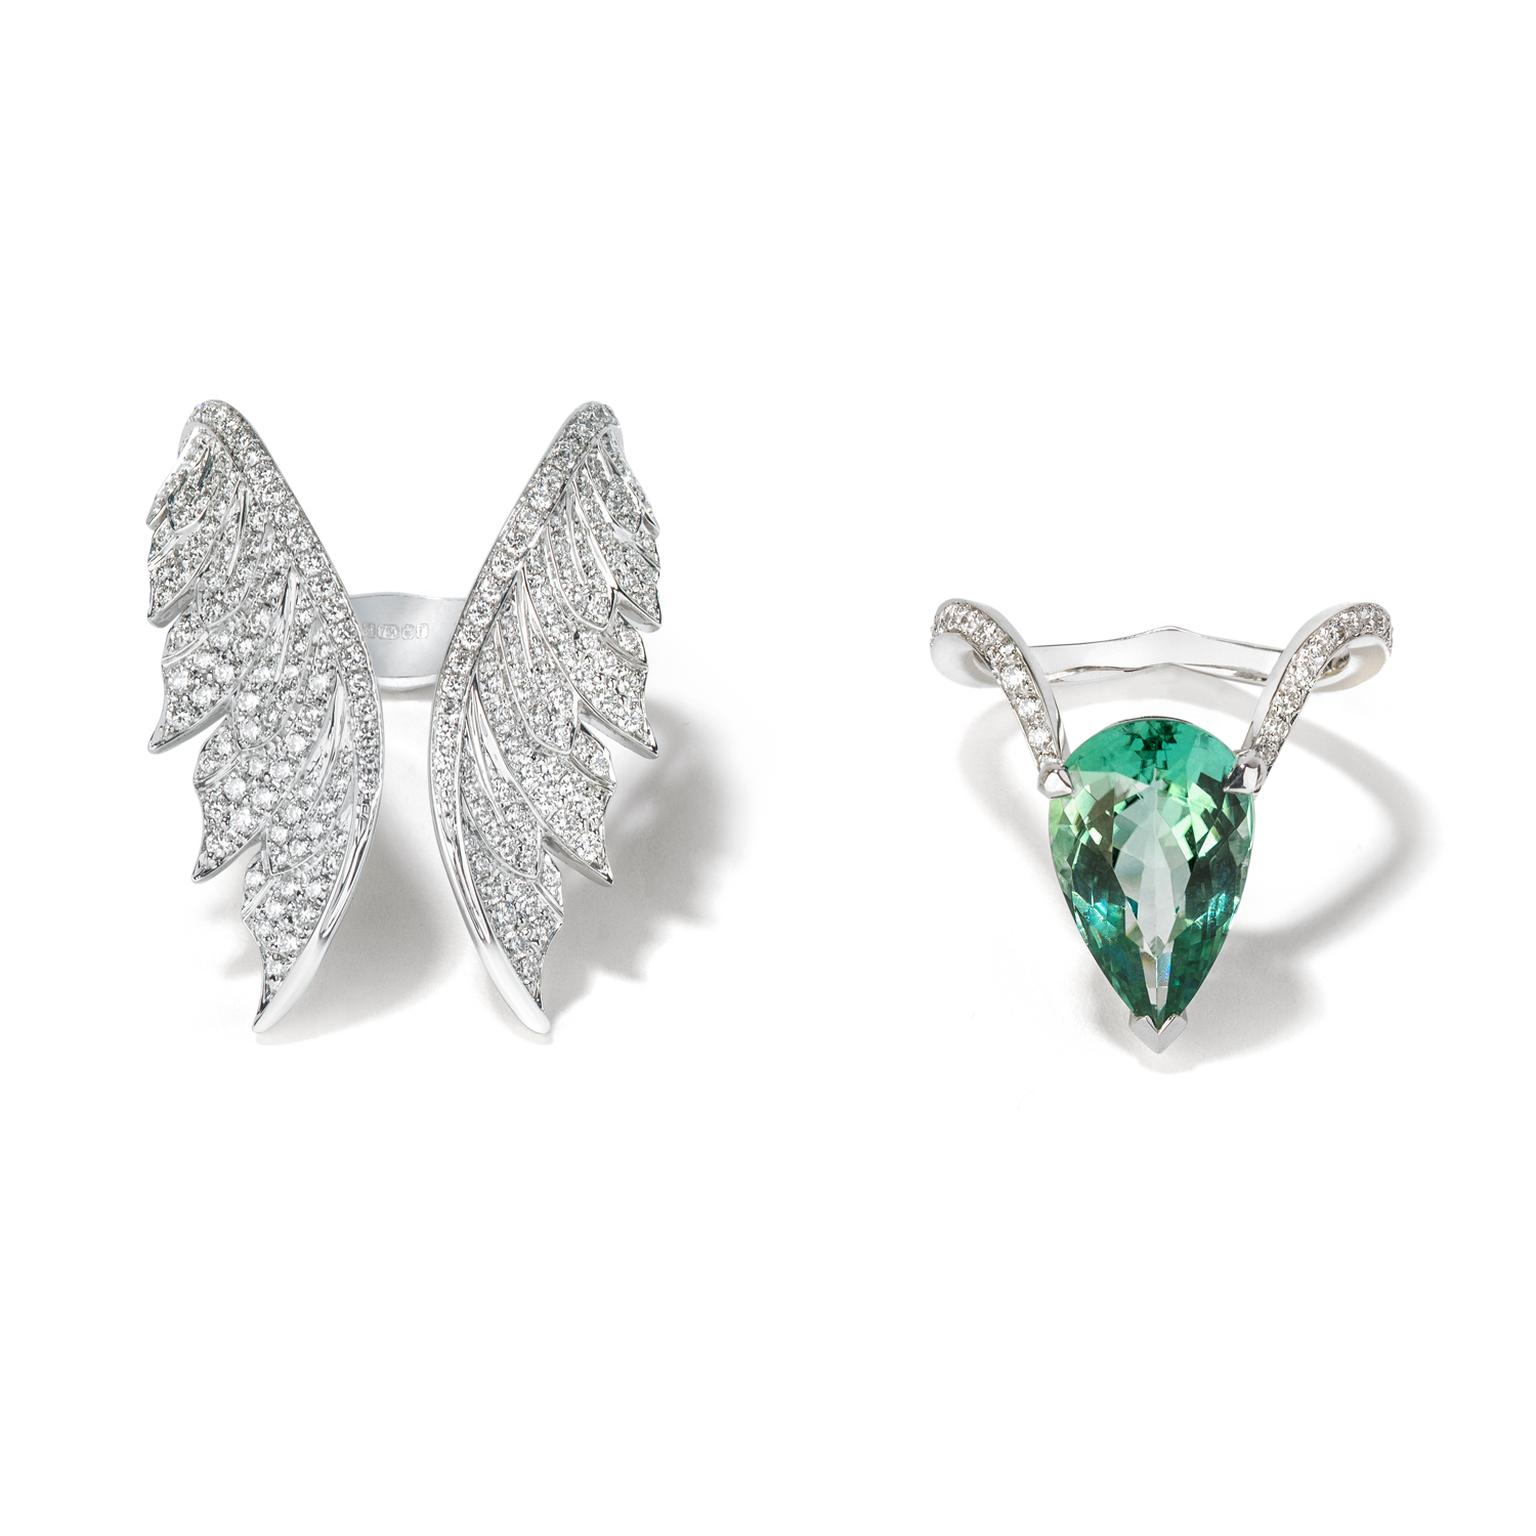 Stephen Webster Magnipheasant tourmaline cocktail ring with open feather ring